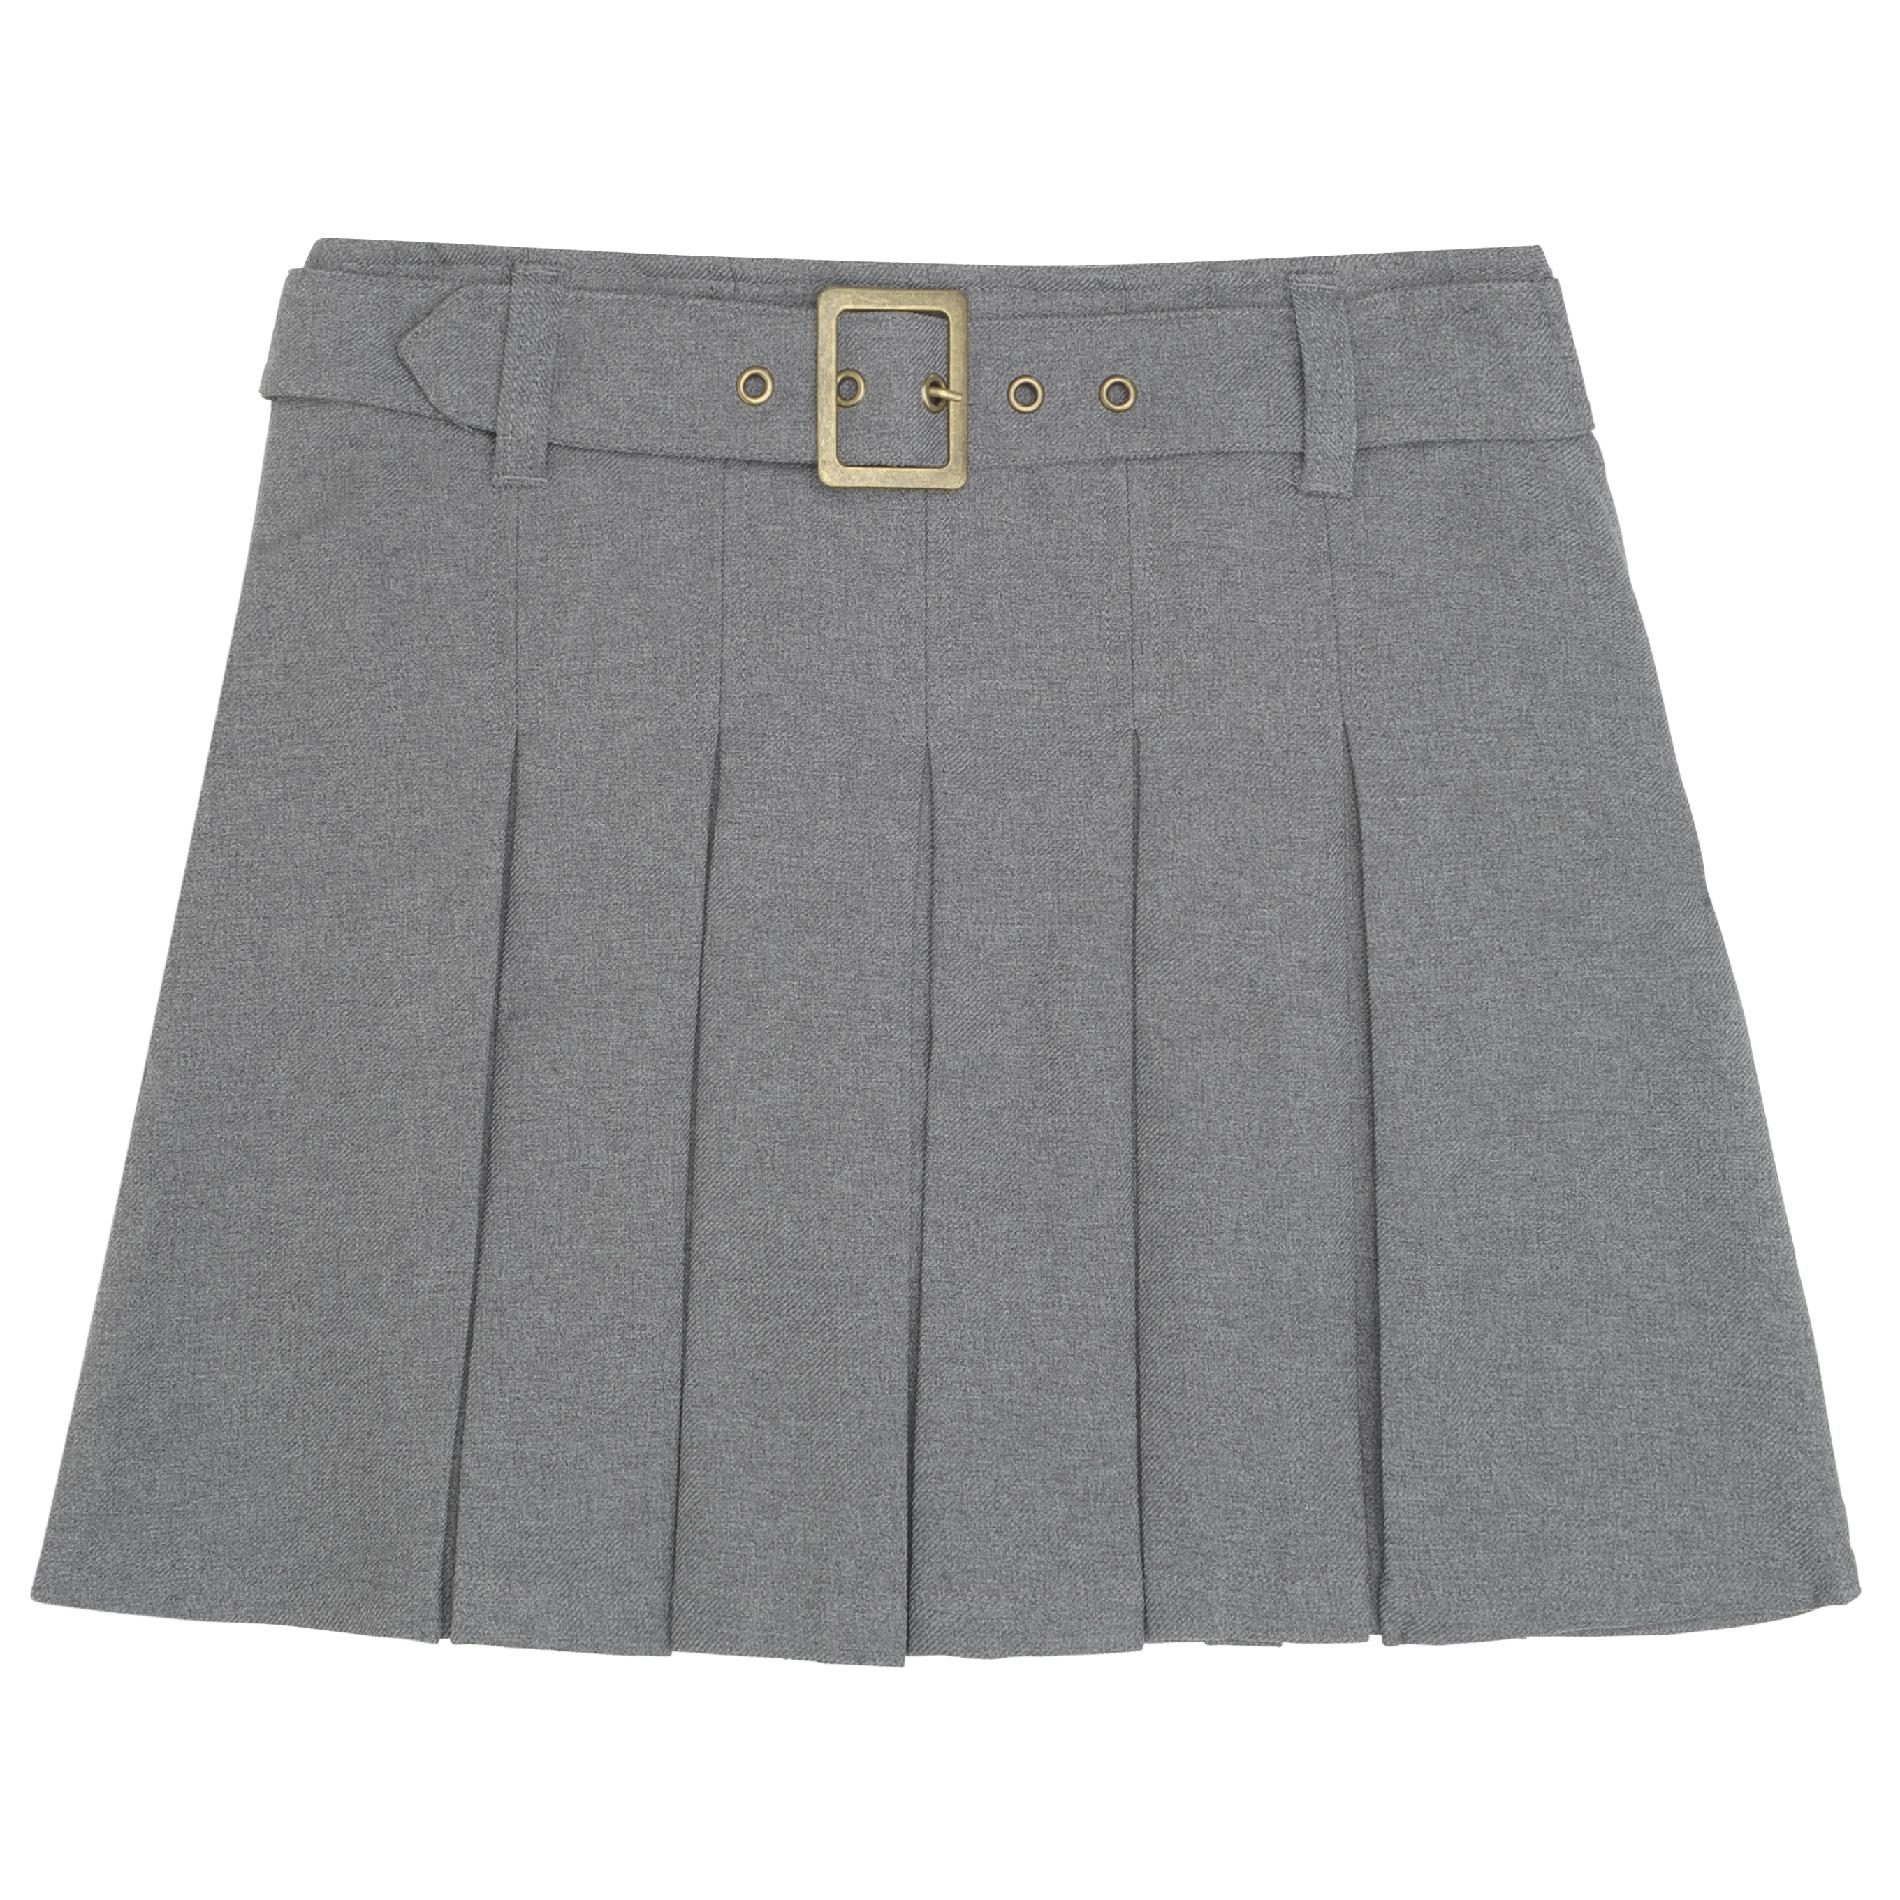 School Skirts Kmart At School By French Toast Girls Plus Pleated Scooter With